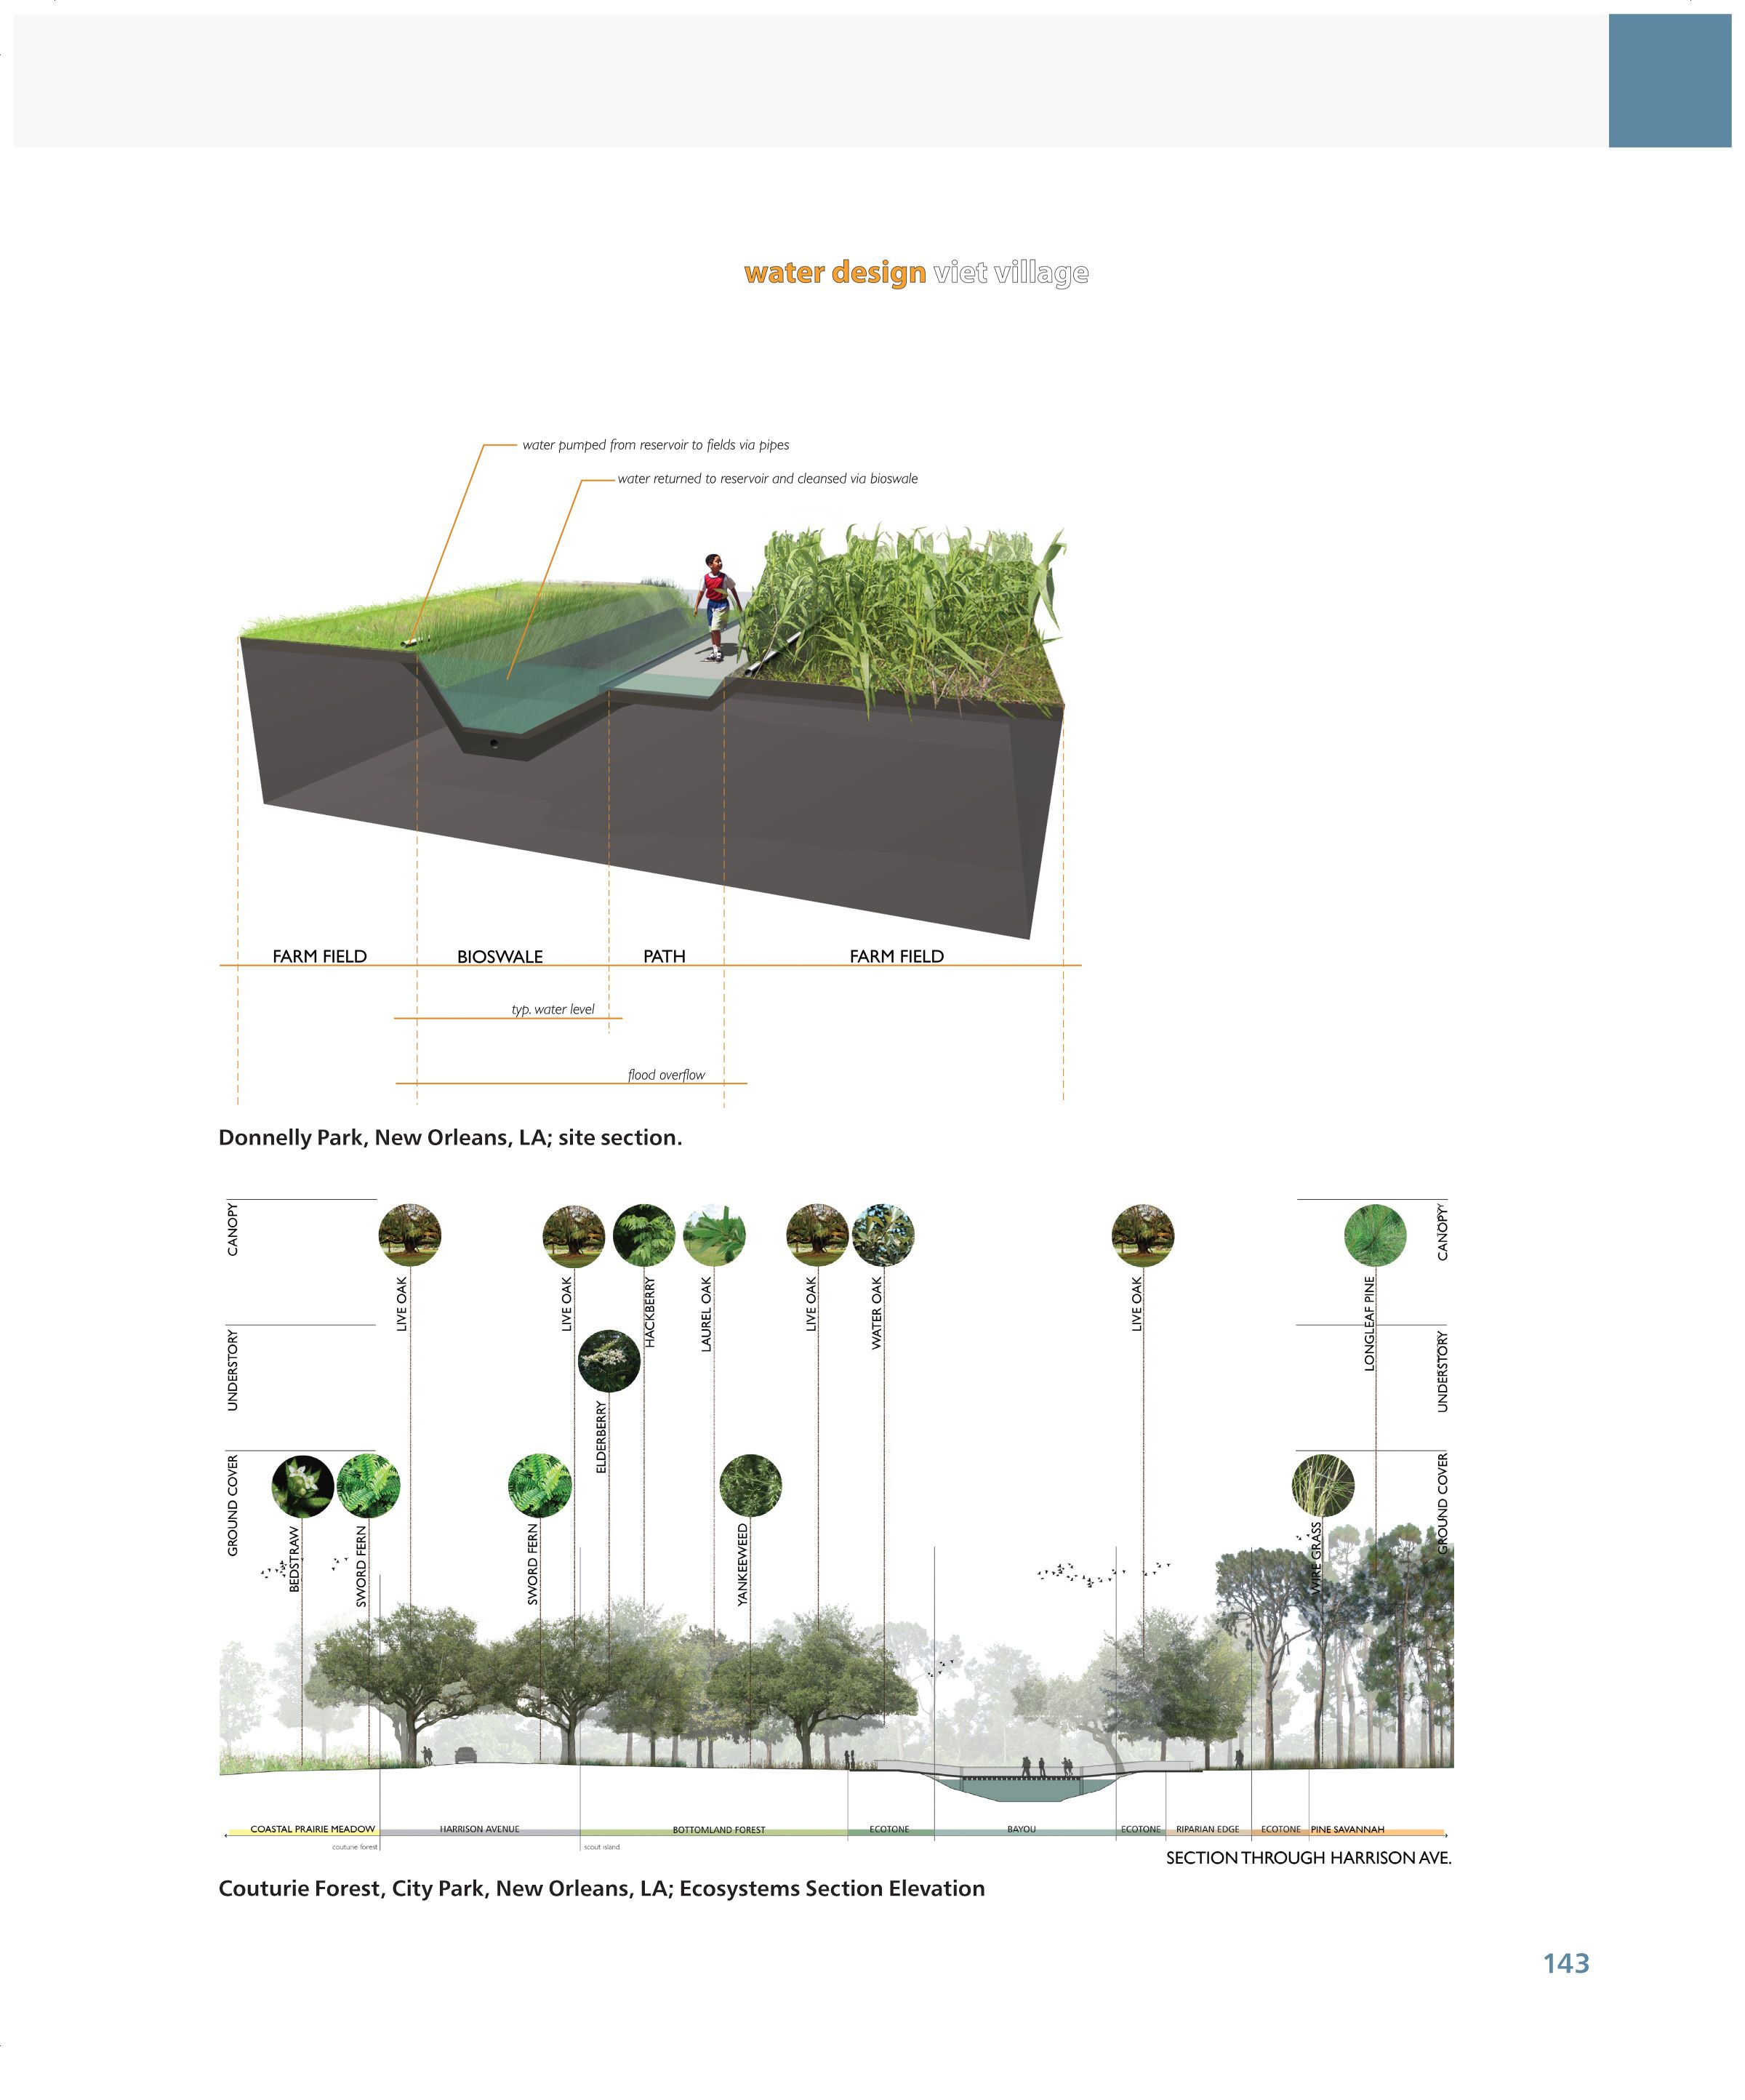 Bradley Cantrell Wes Michaels Couturie Forest City Park New Orleans 20 In 2020 Landscape Architecture Section Landscape Architecture Diagram Architectural Section